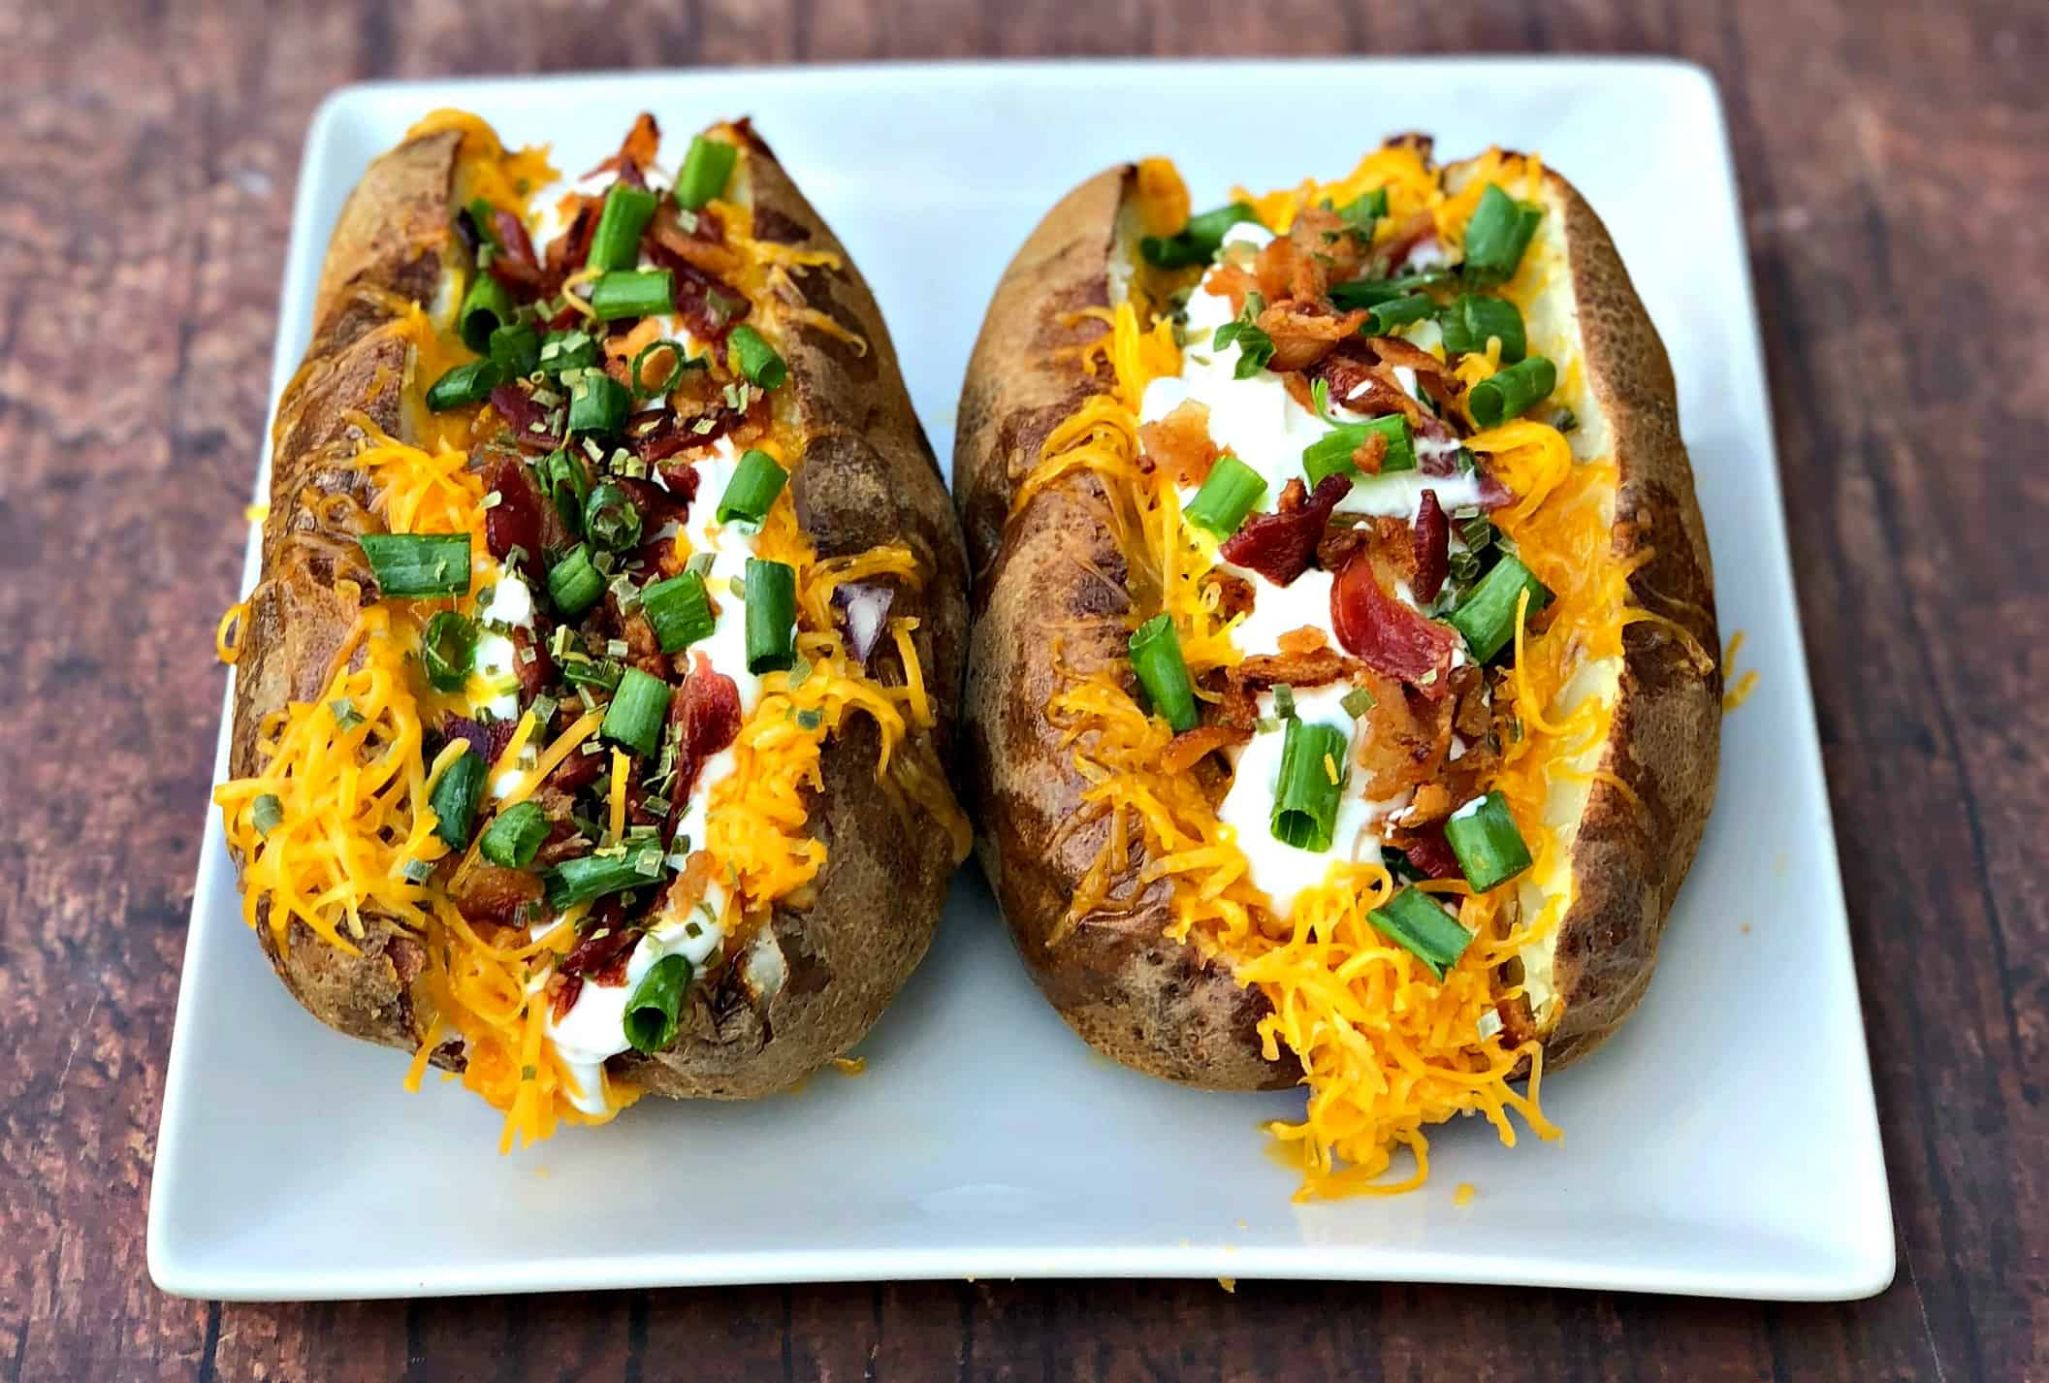 Easy, Air Fryer Loaded Stuffed Baked Potatoes - Baked Potato Recipes Quick